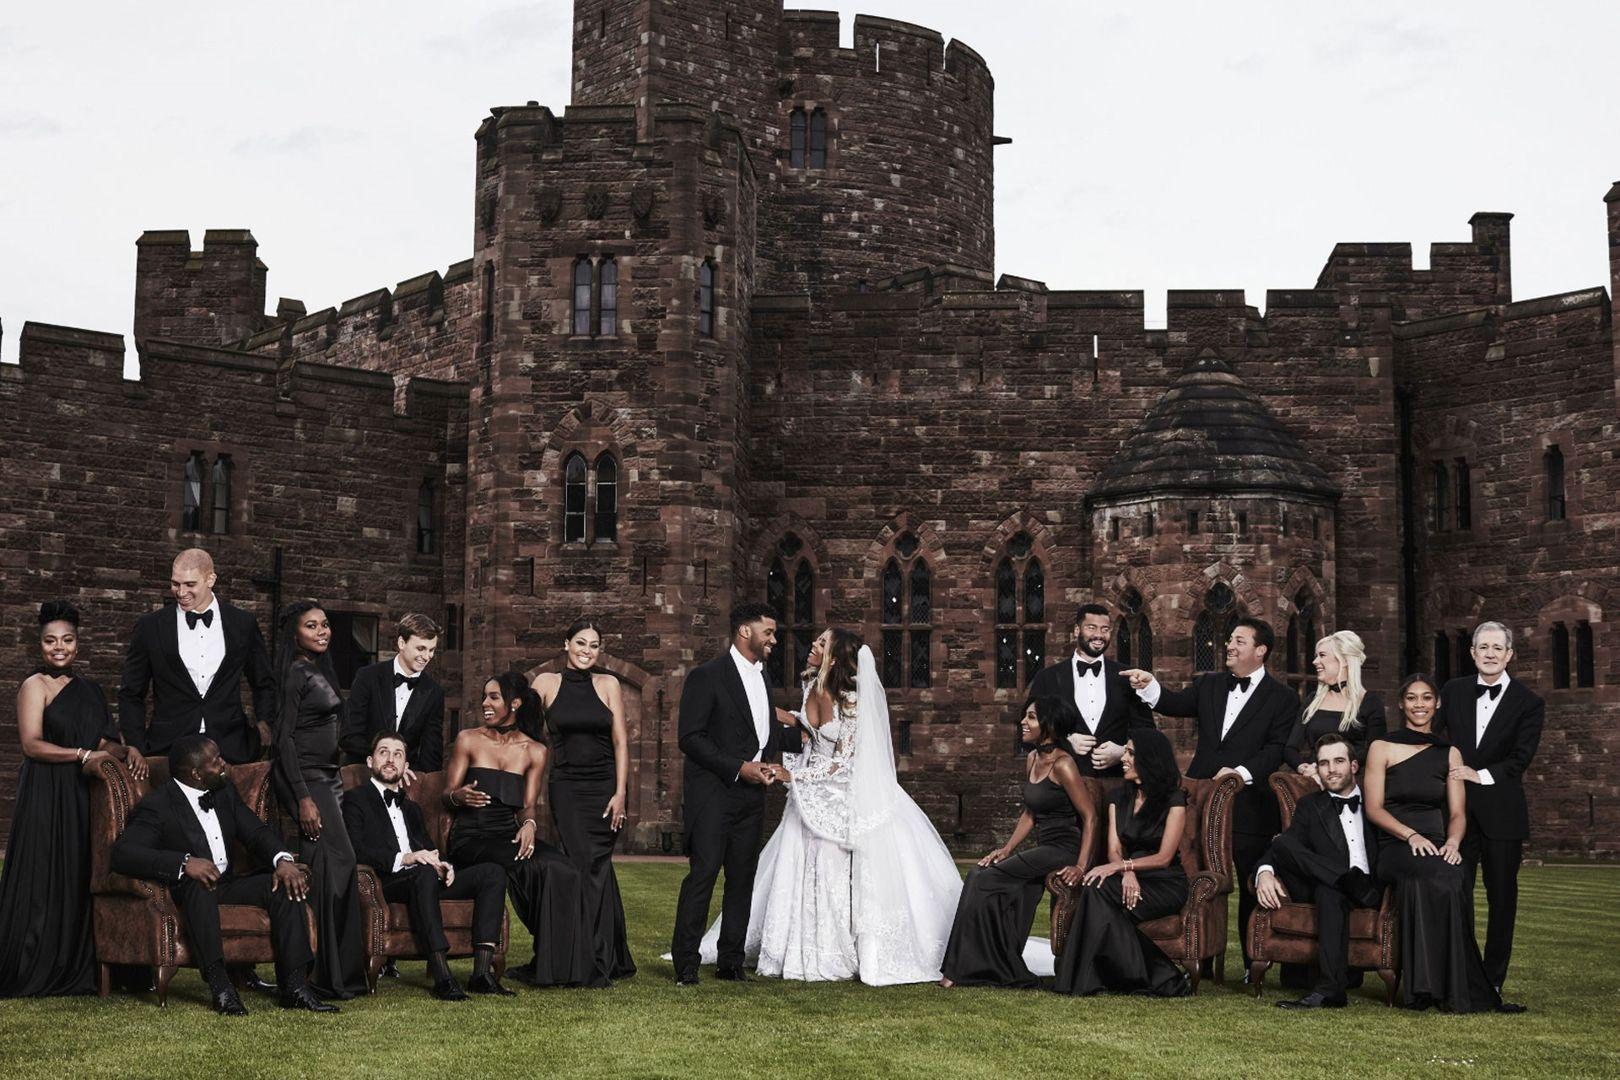 Ciara and Russell Wilson's wedding party, including bridesmaids Kelly Rowland and Lala Anthony